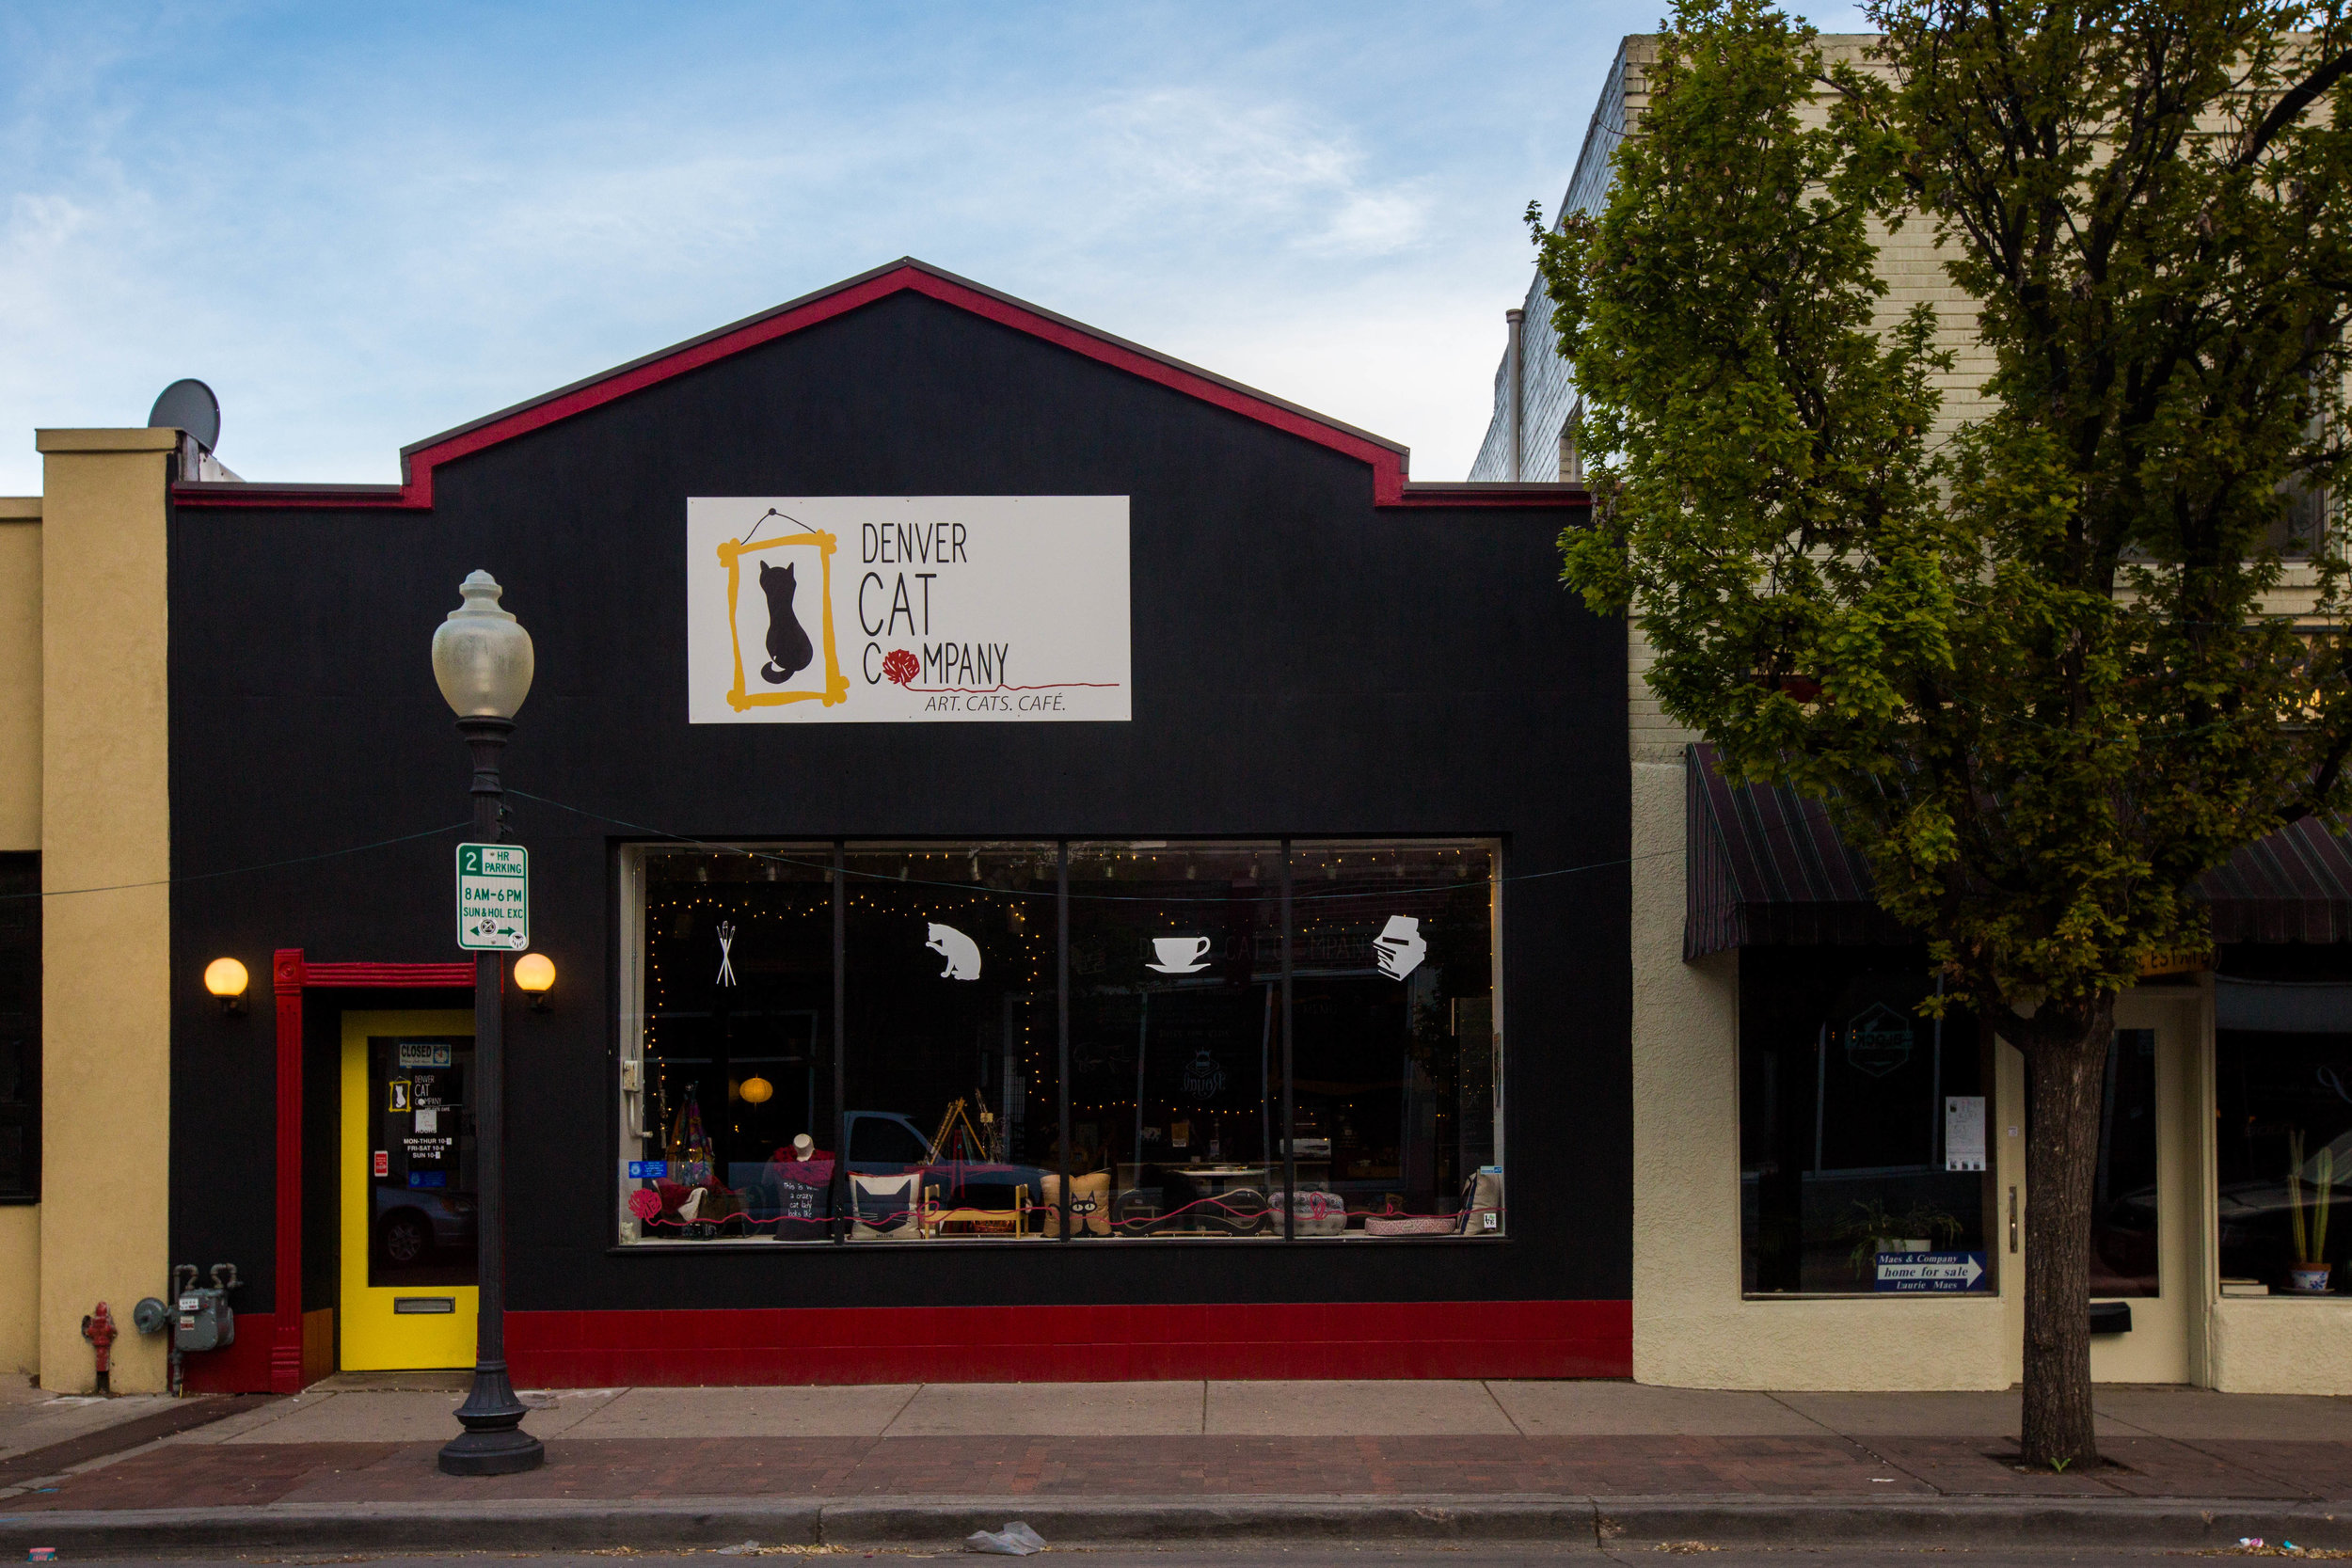 Our fabulous location on historic Tennyson Street (near the Highlands in Denver) means you can make a day of shopping at local boutiques and gift shops, brunching with friends, and petting some kitties.  Image credit: Danielle Lirette Photography